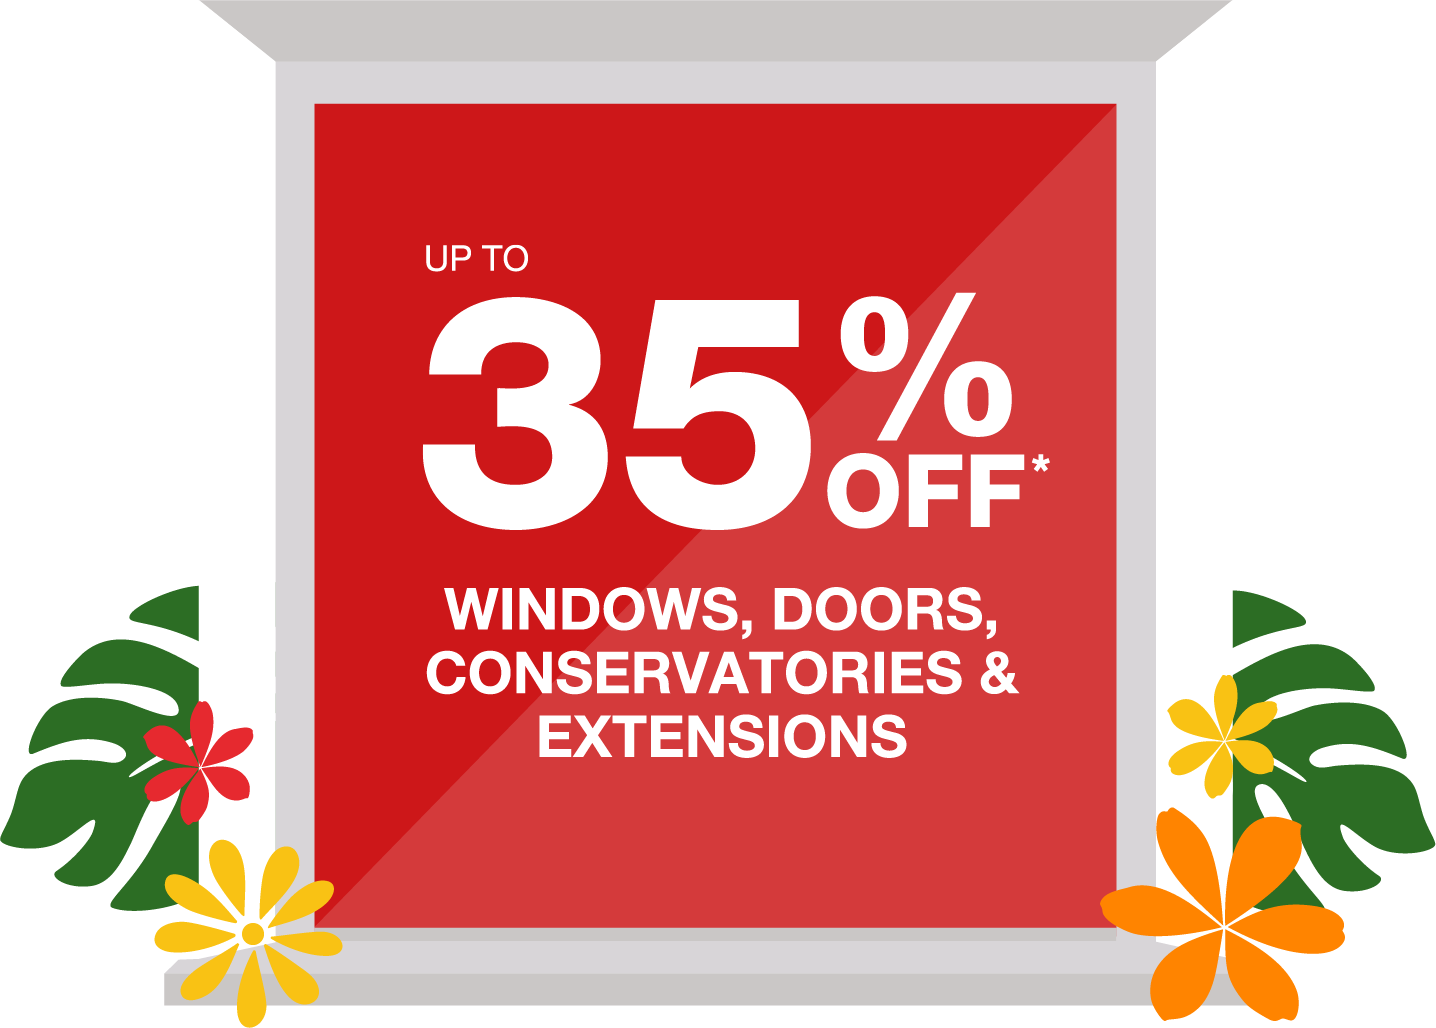 Or get up to 35% off Windows, Doors & Conservatories*